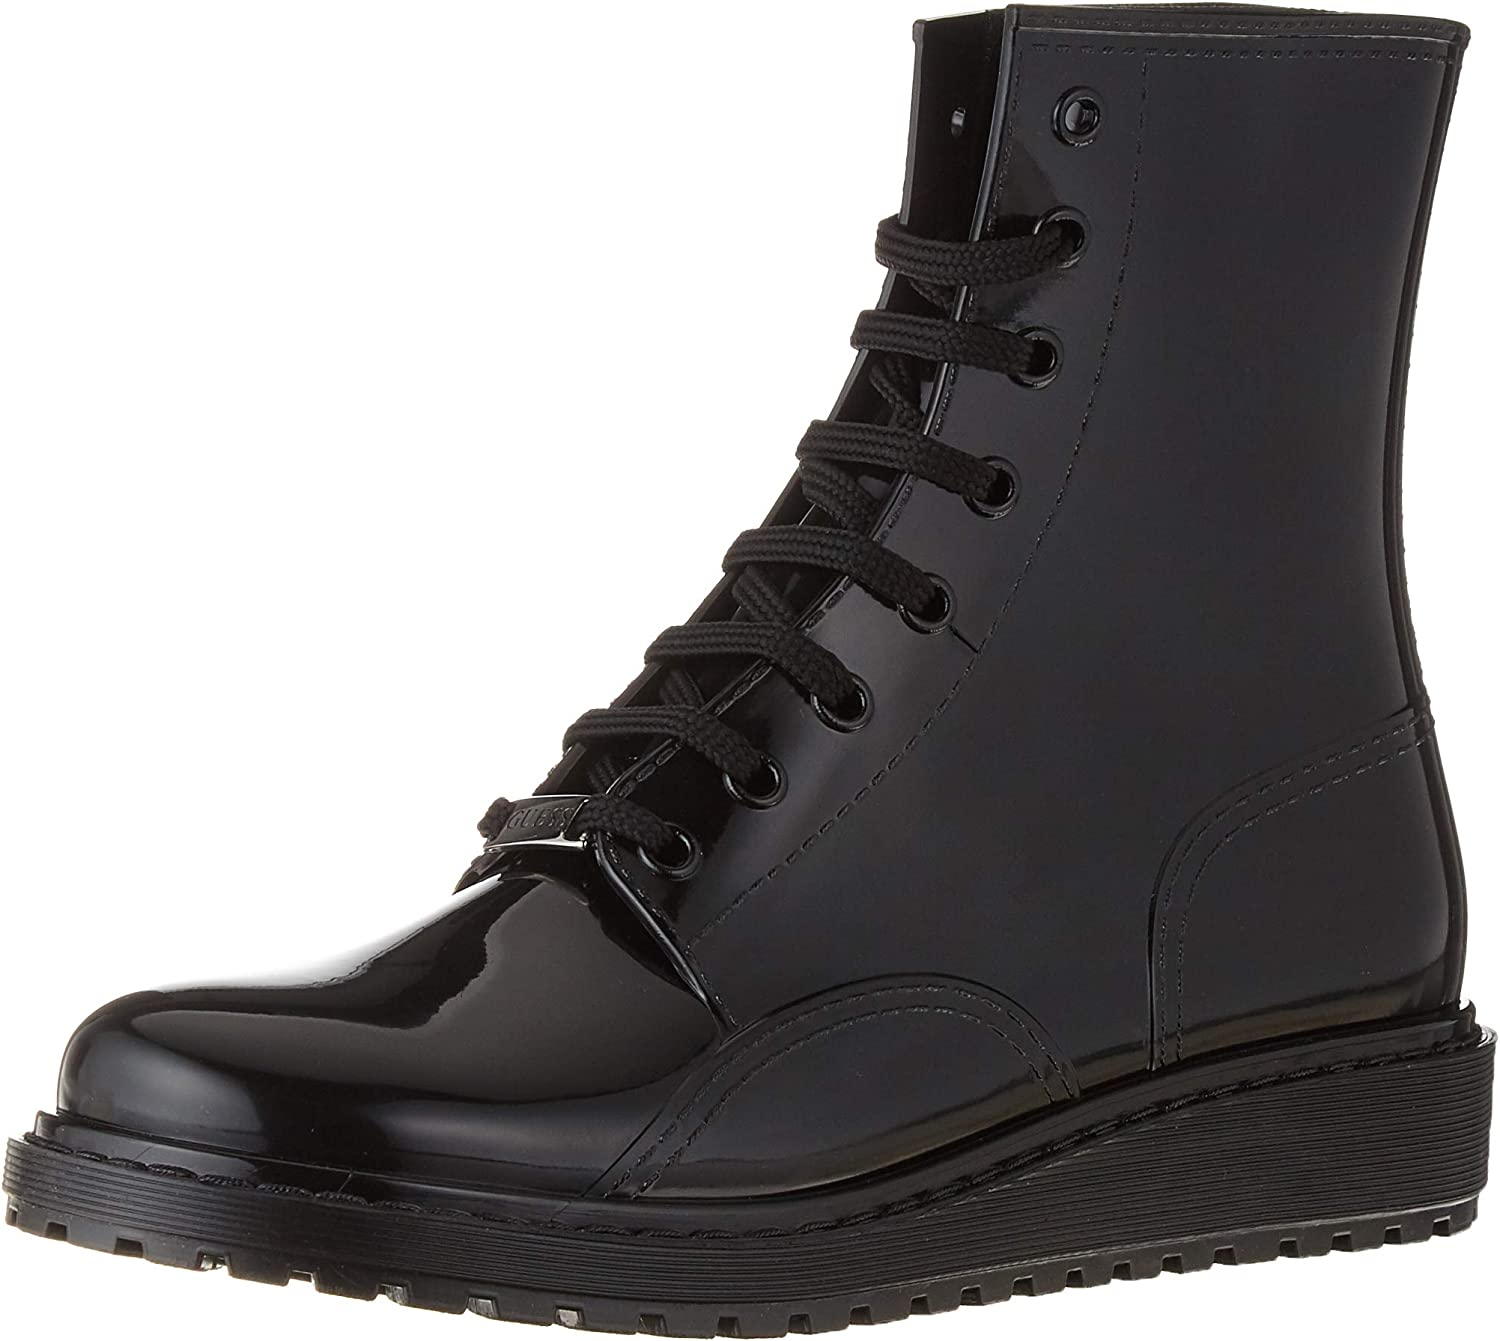 GUESS Fldty3Rub10 Womens Black Rubber Boots